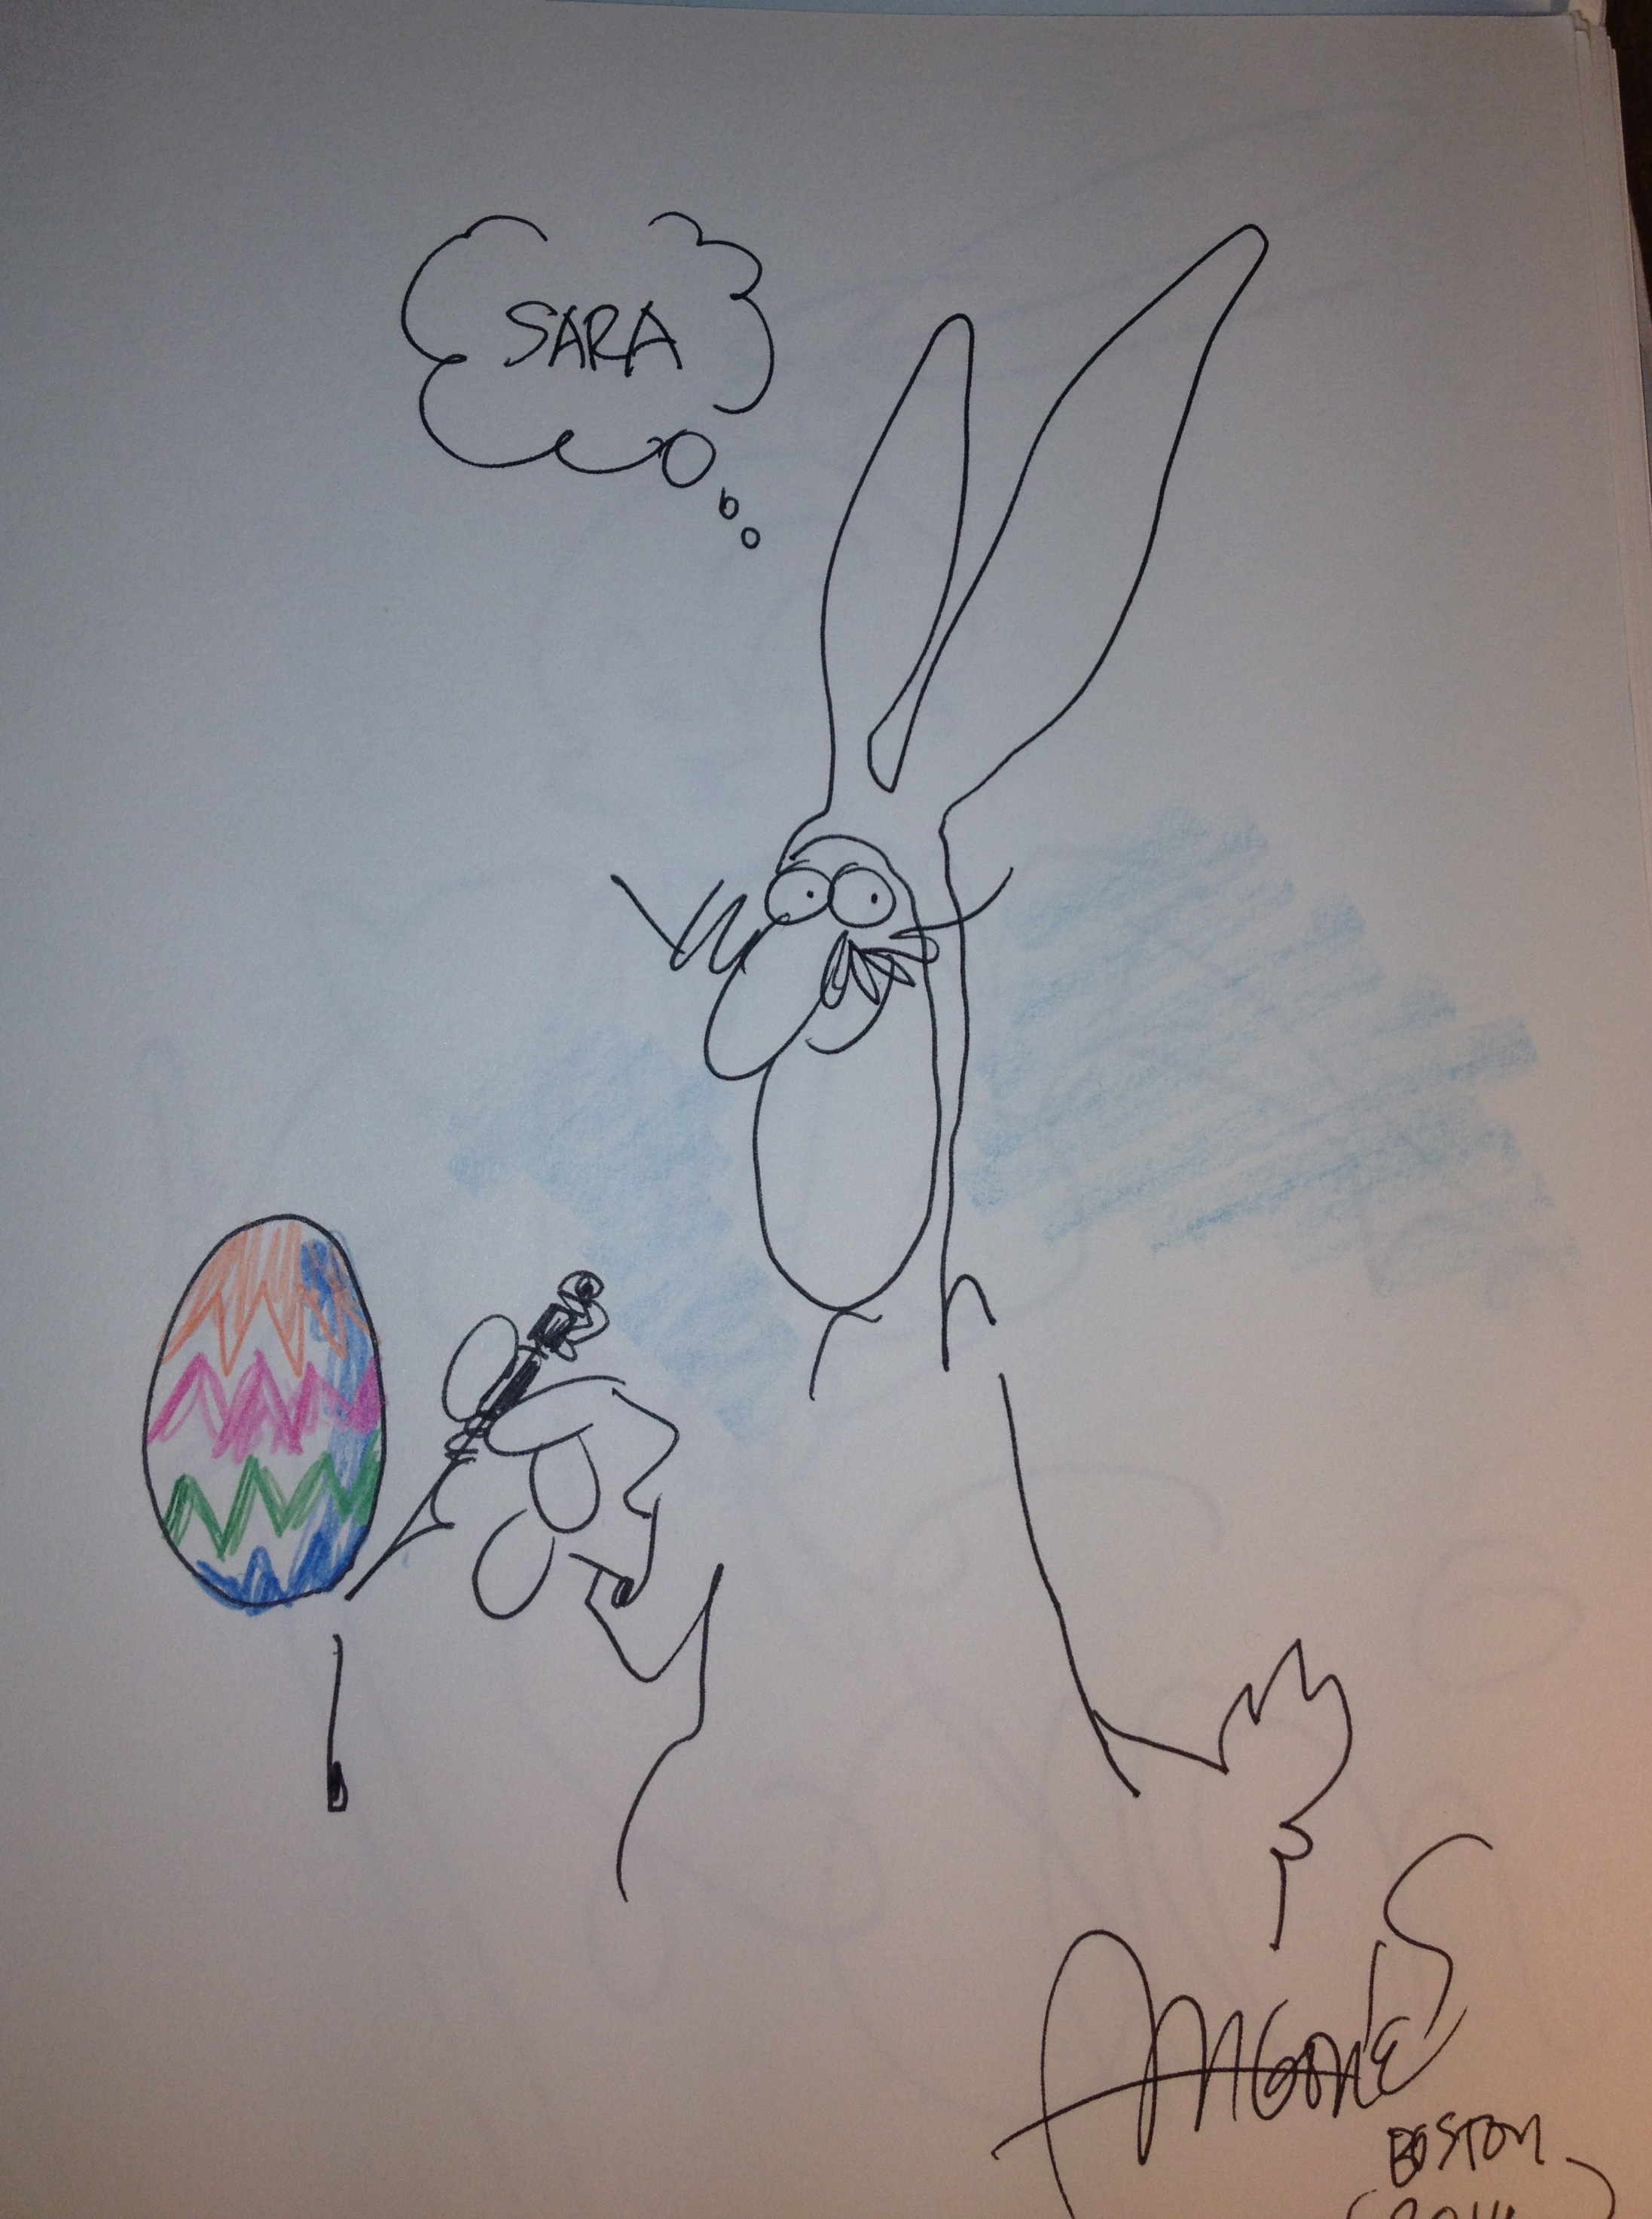 Easter Bunny/self portrait by Sergio Aragones